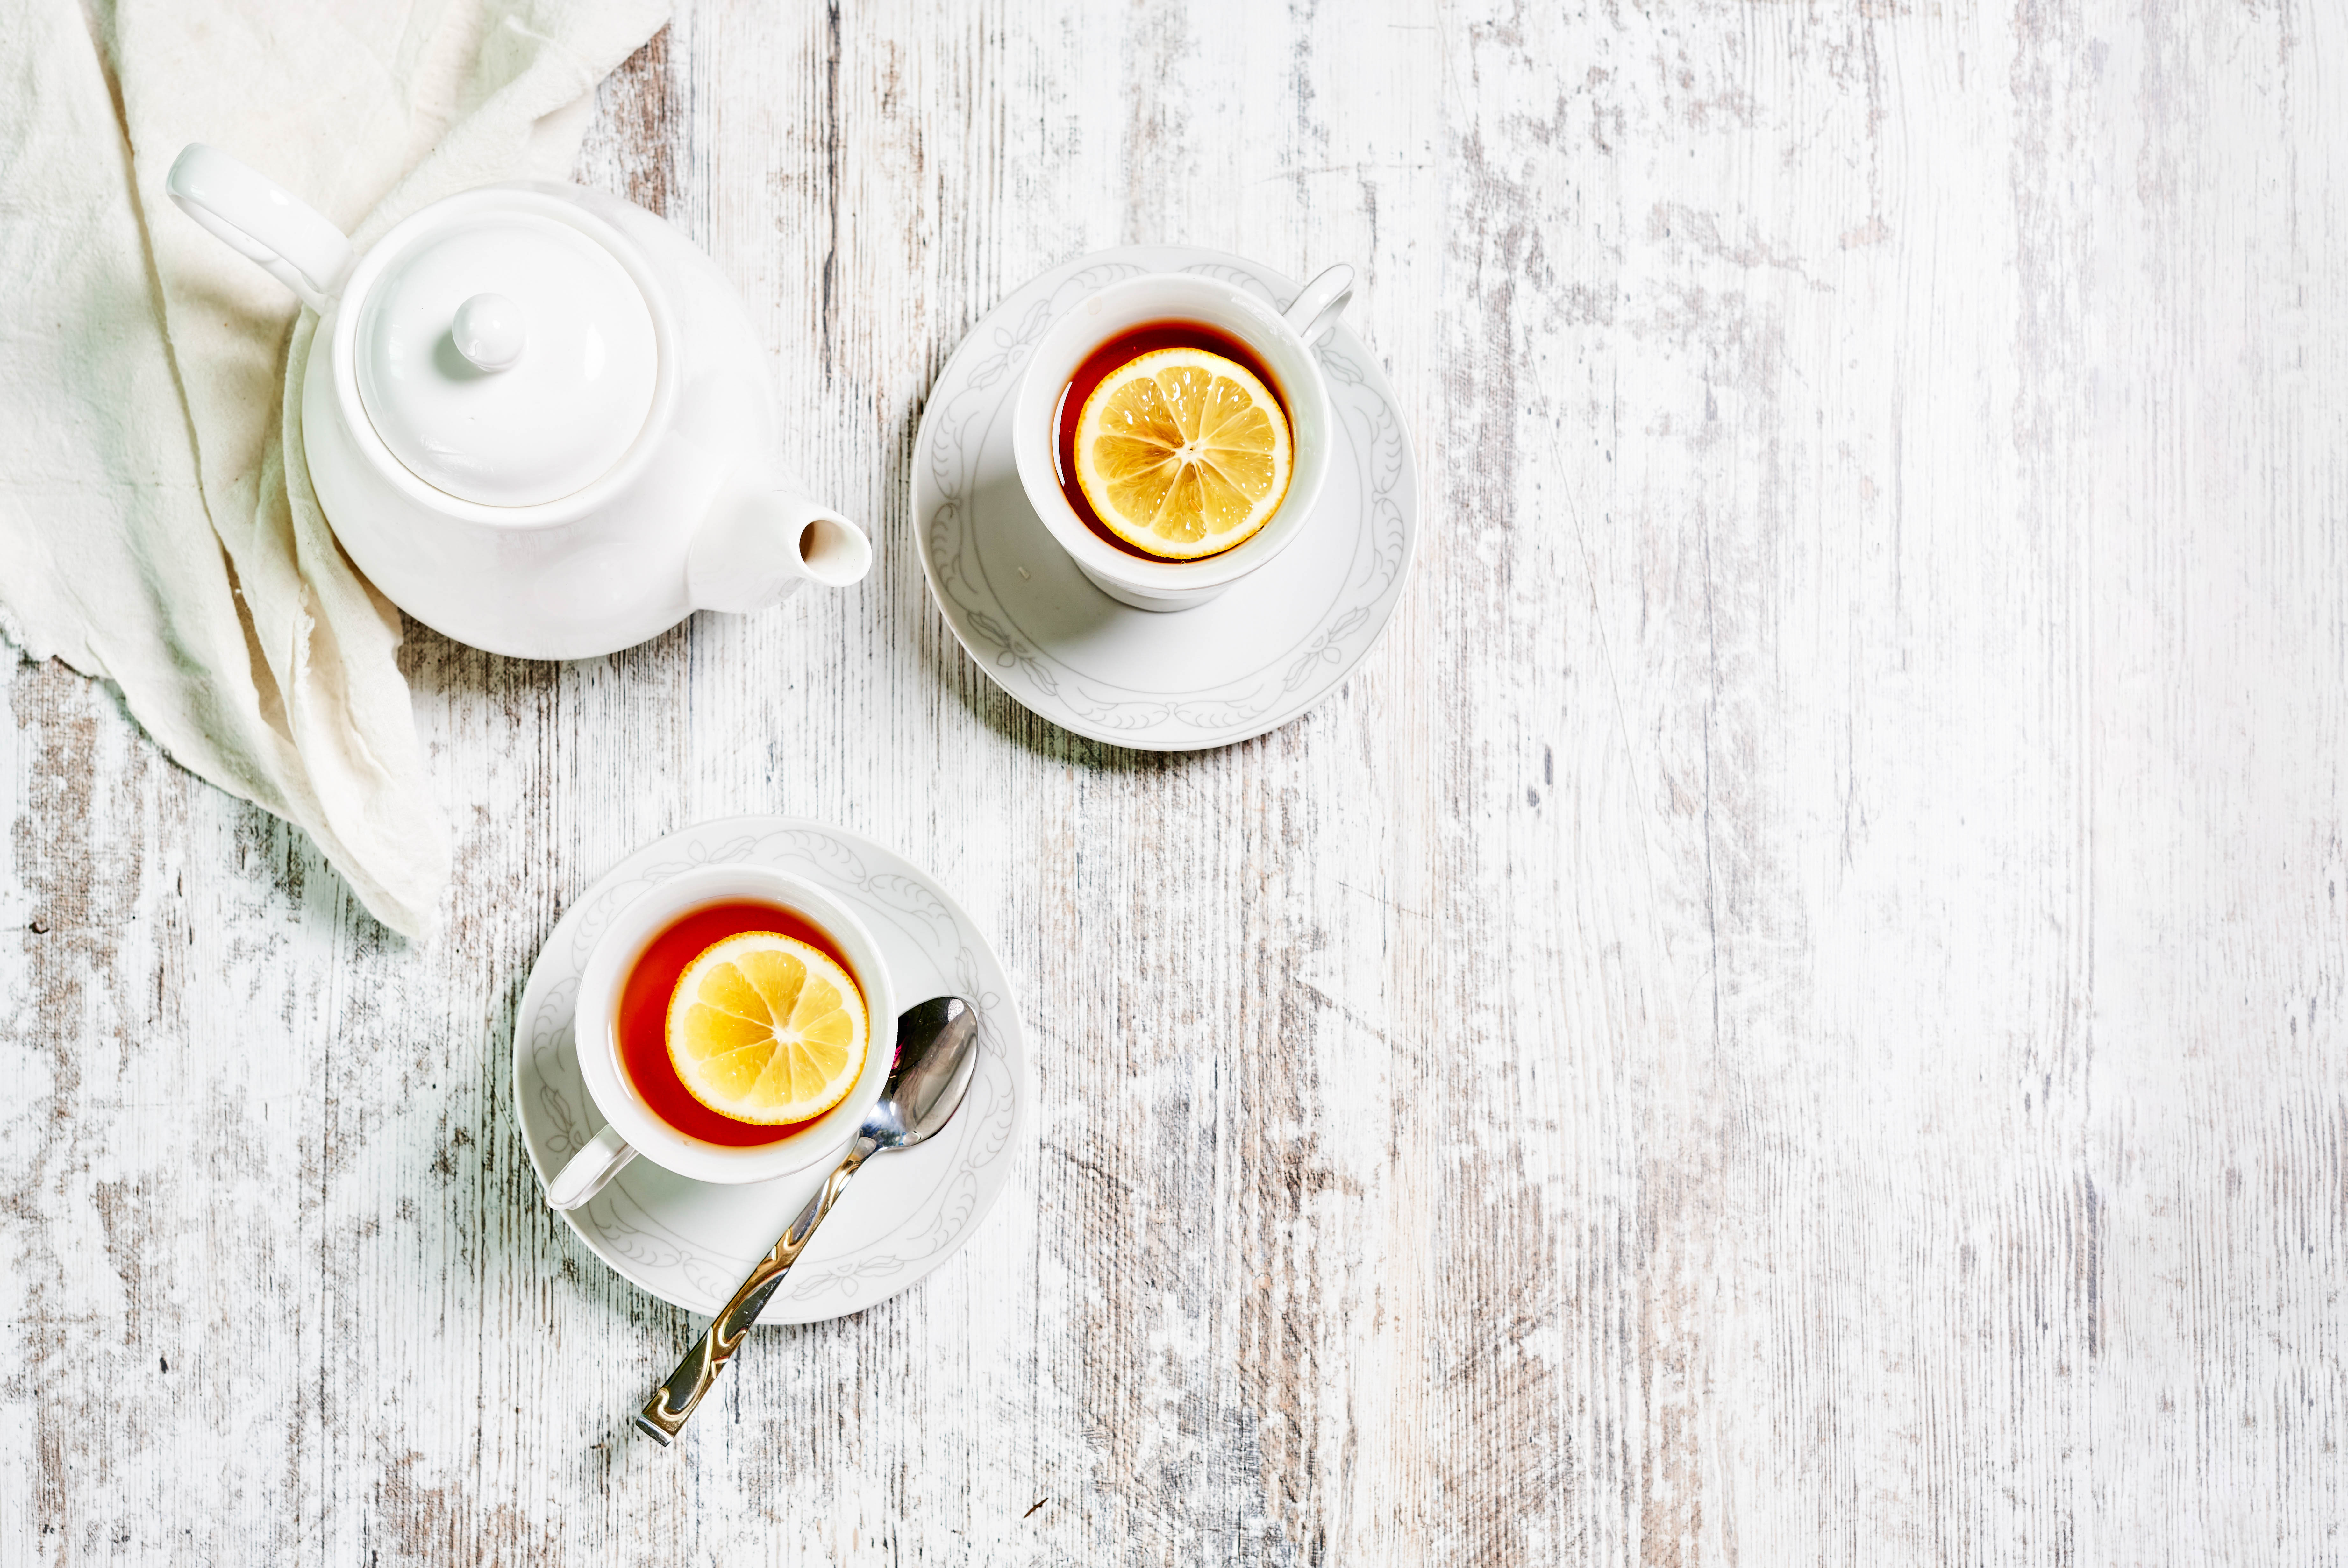 132464 download wallpaper Food, Cups, Lemon, Drink, Beverage, Tea, Teapot, Kettle screensavers and pictures for free